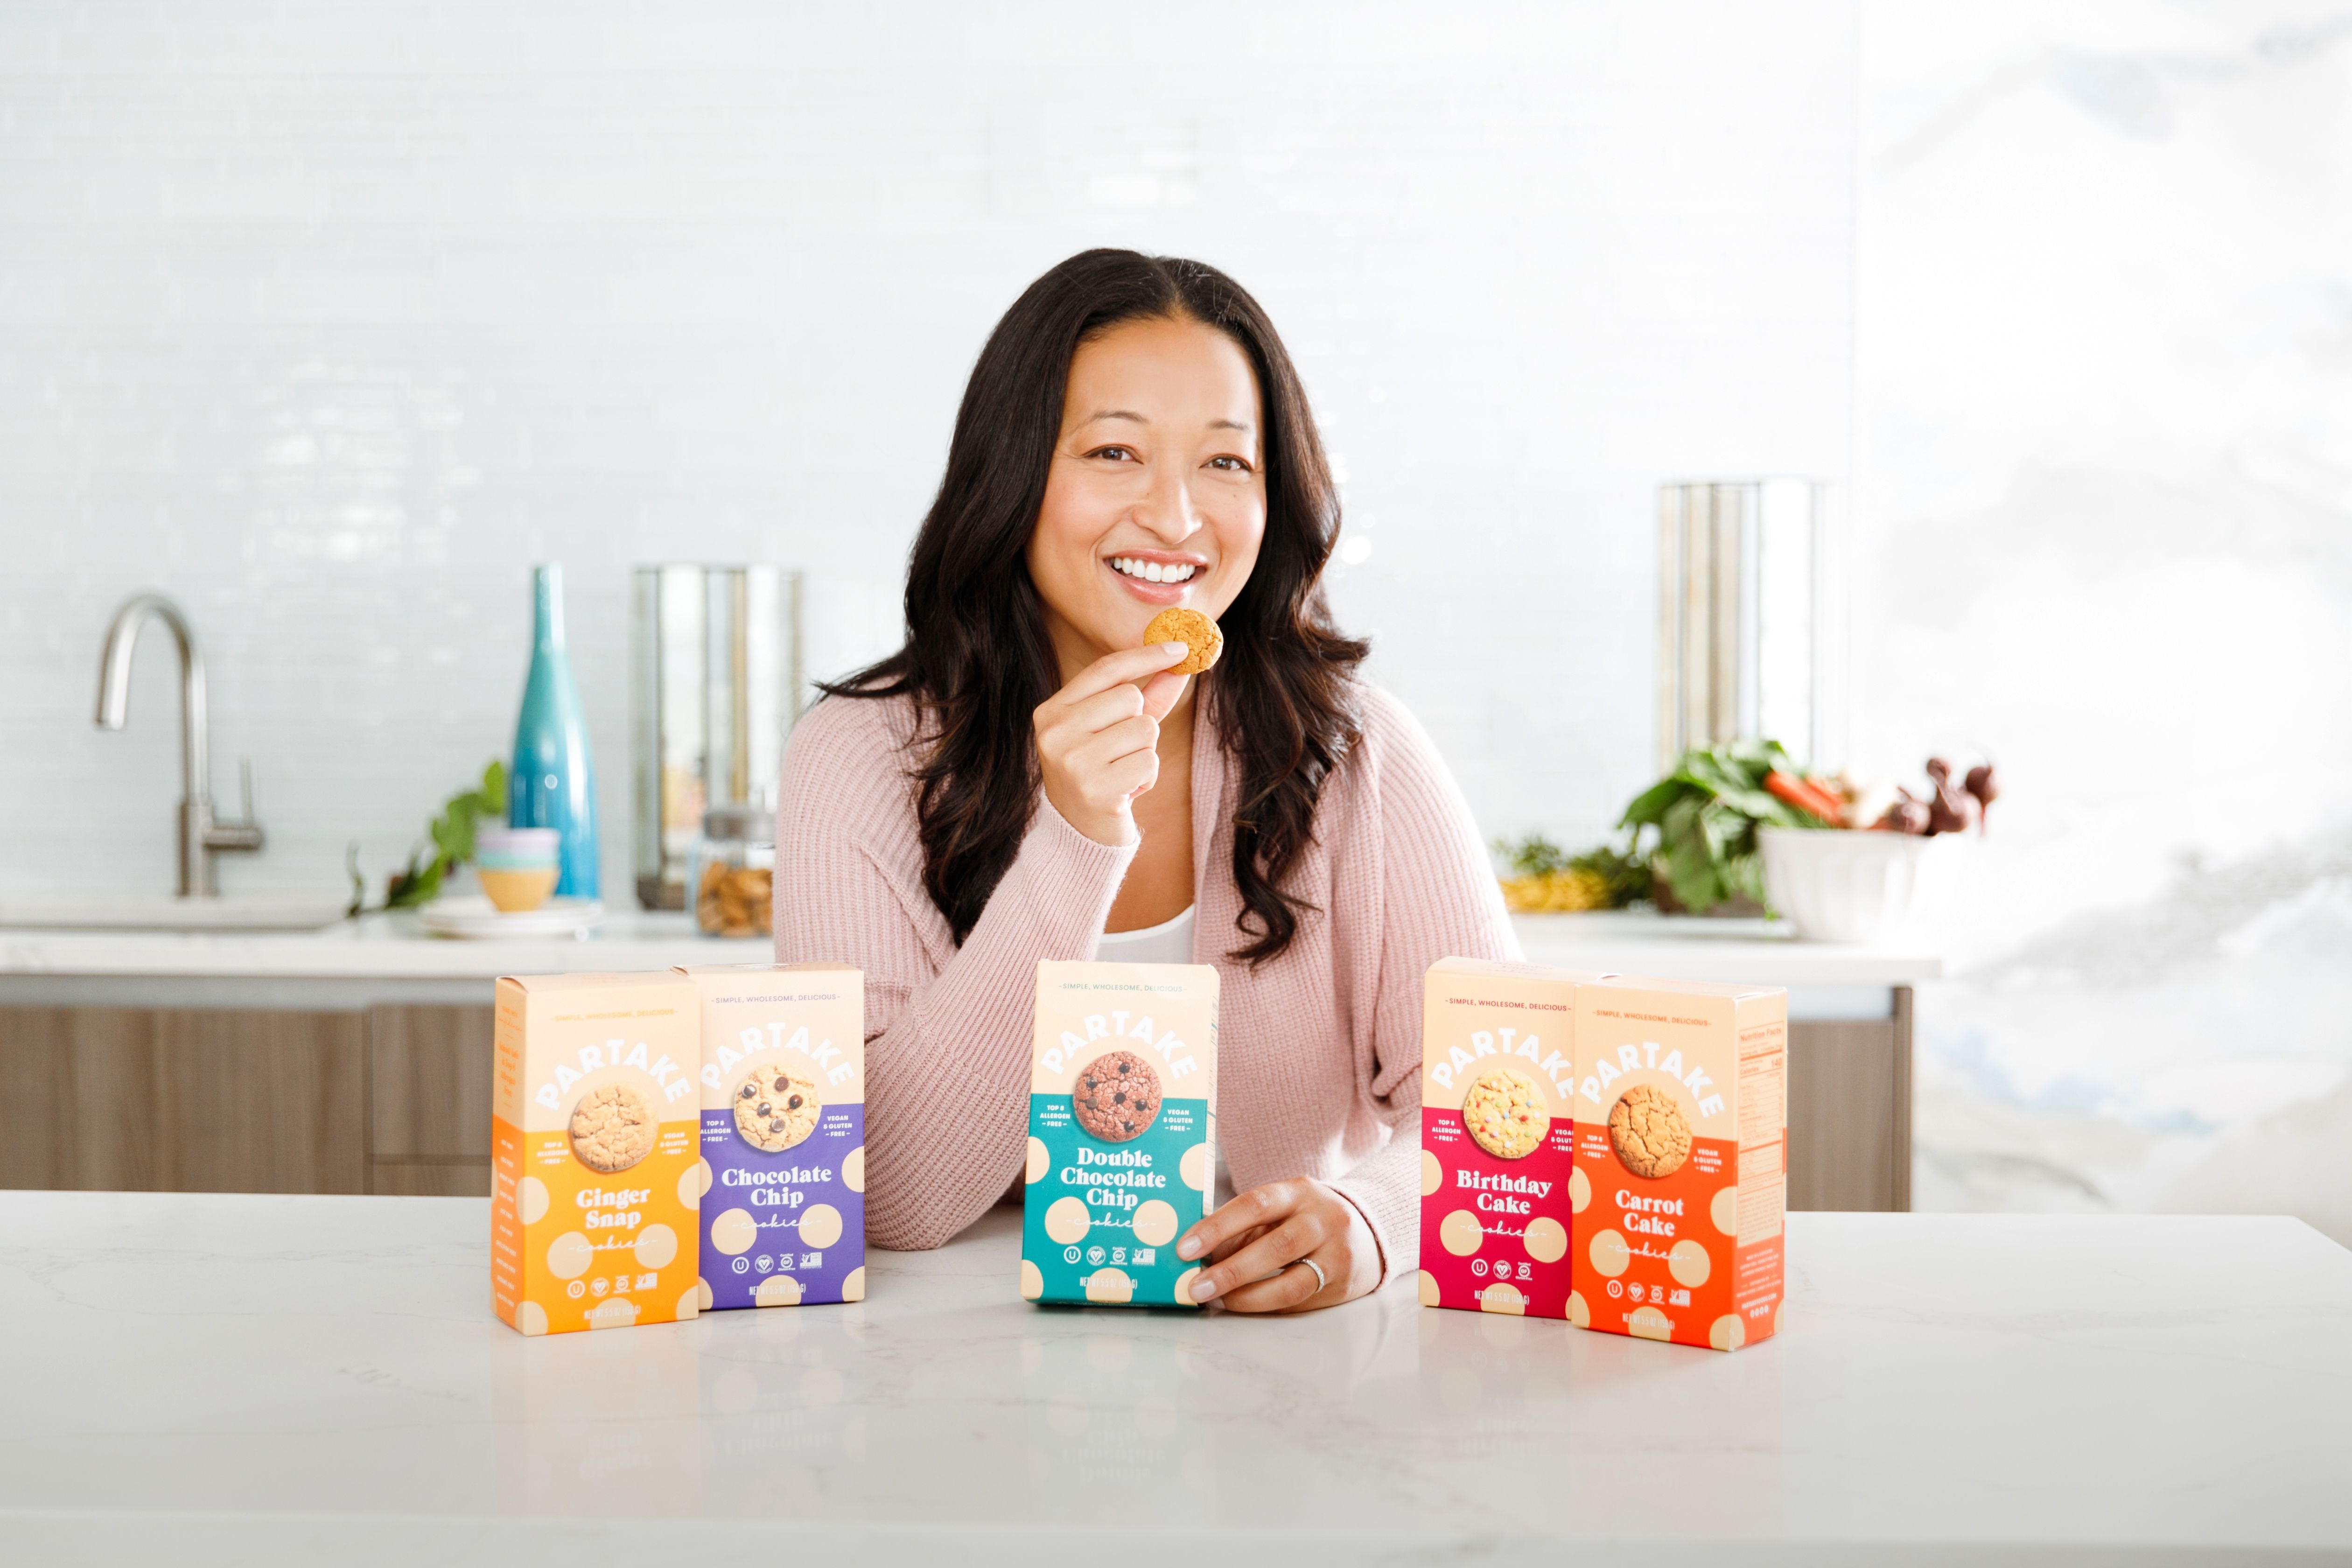 Denise Woodard in a kitchen with five different types of Partake Foods cookies displayed in front of her.